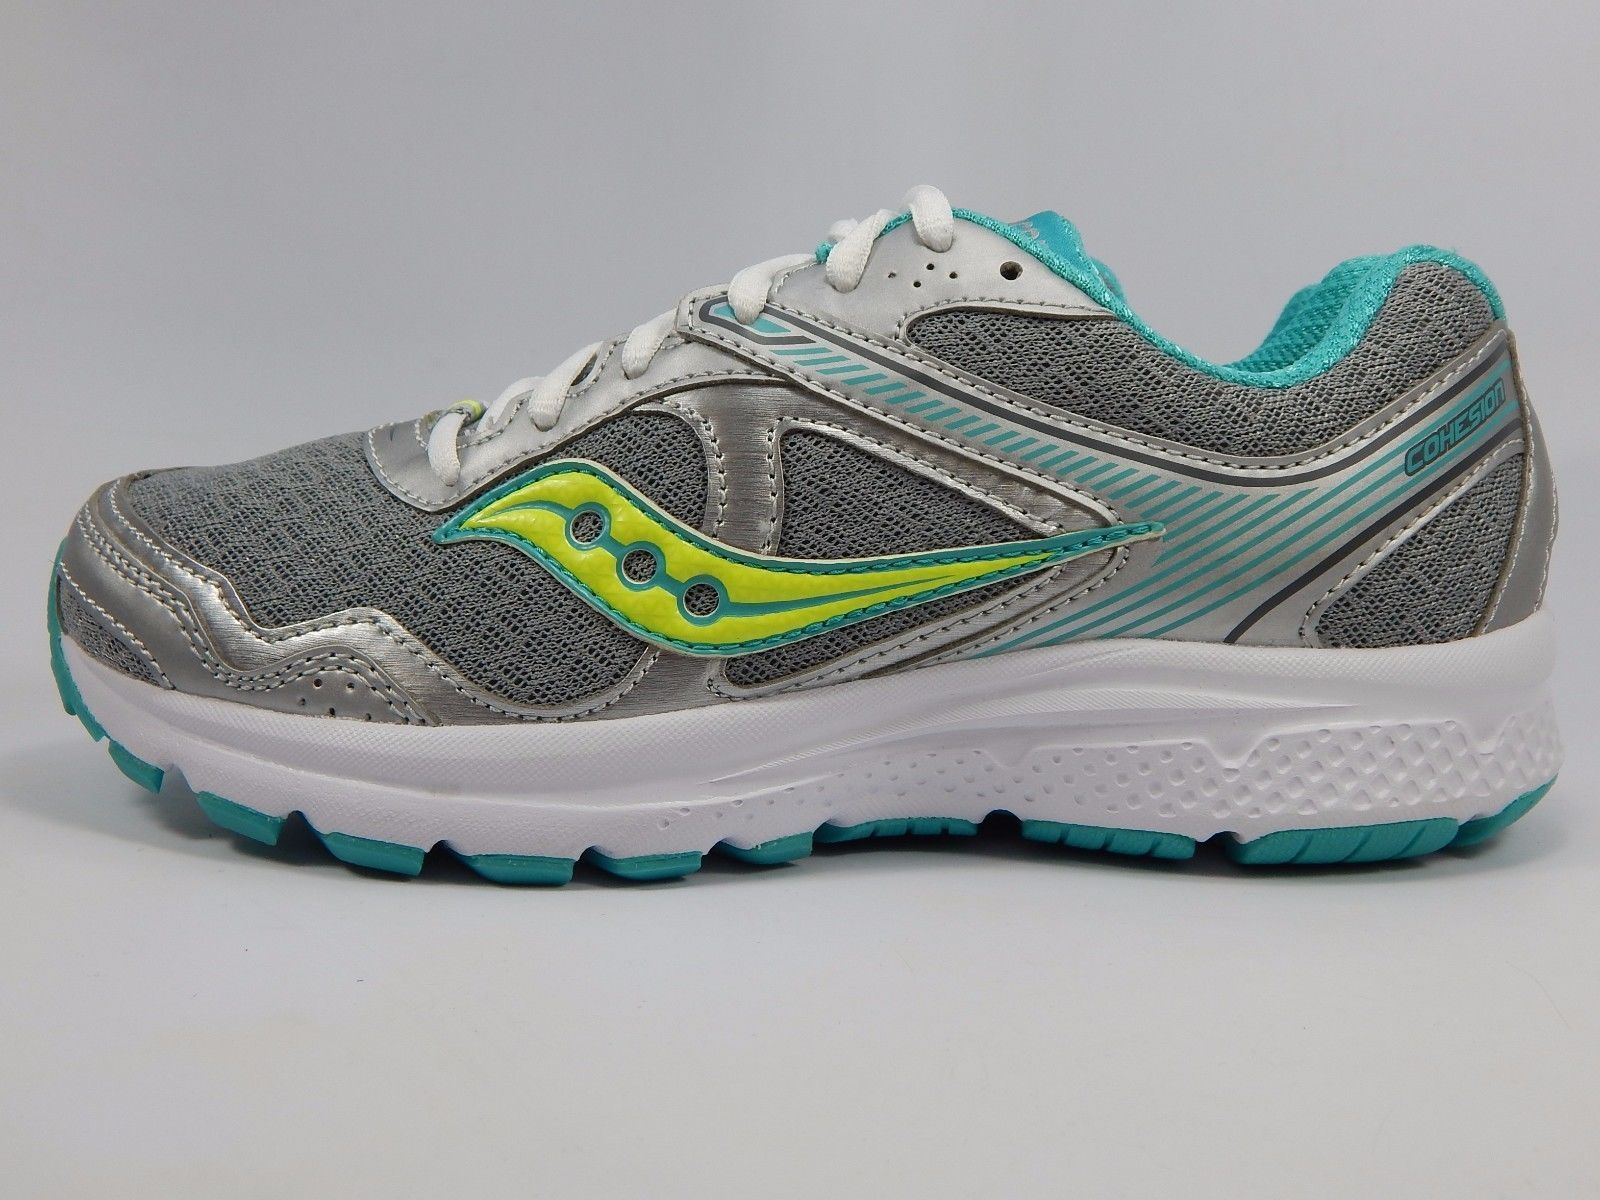 Saucony Cohesion 10 Women's Running Shoes Sz US 7 M (B) EU 38 Gray Teal S15333-1